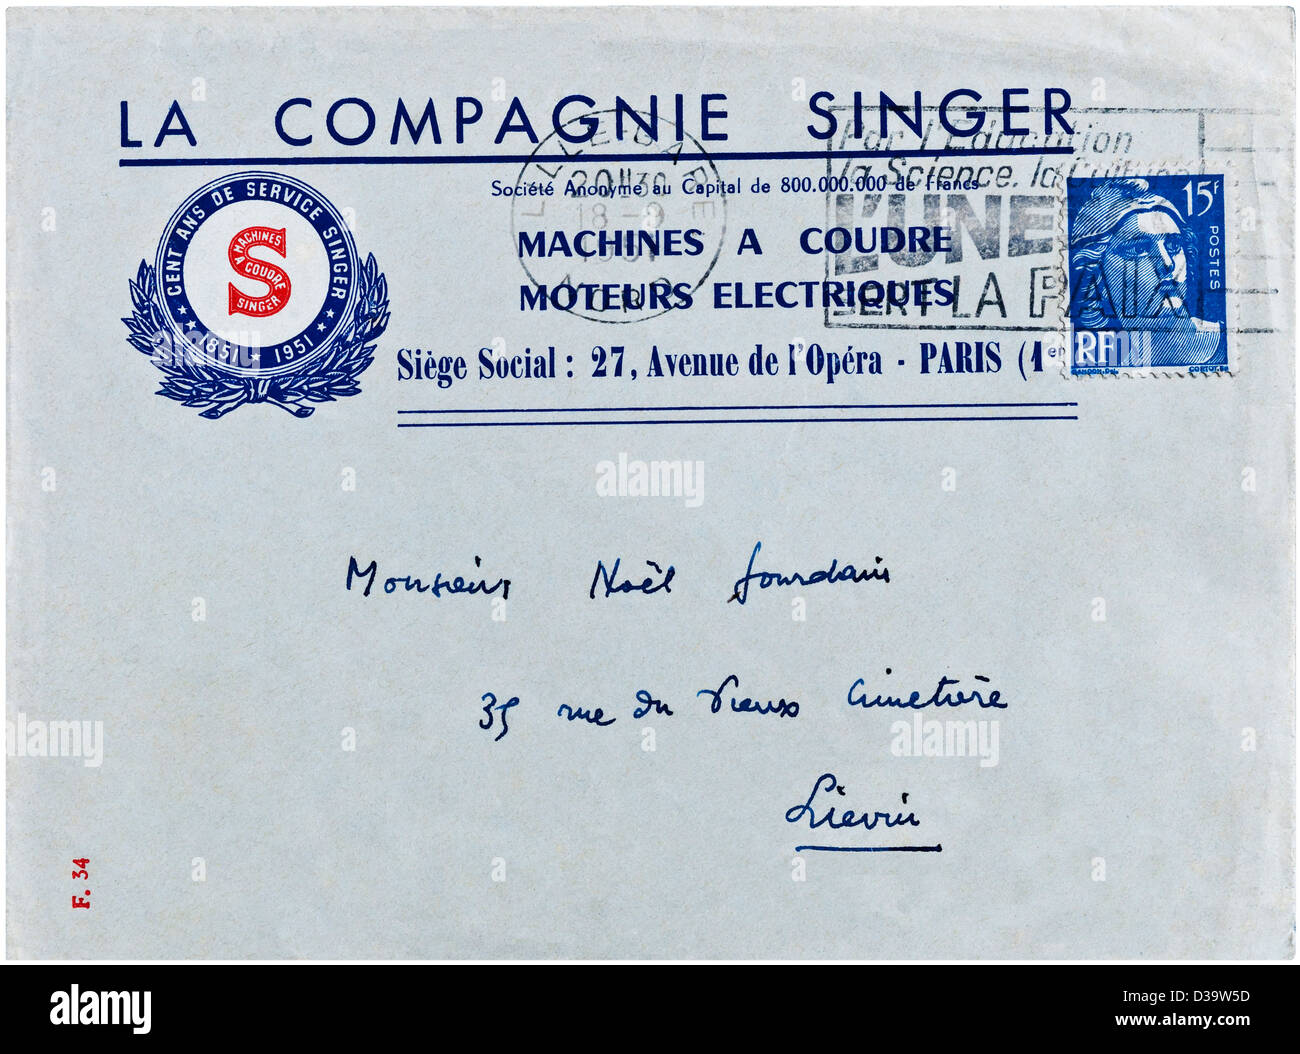 1951 French letter with 100-year anniversary Singer Sewing Machines advertising logo. - Stock Image